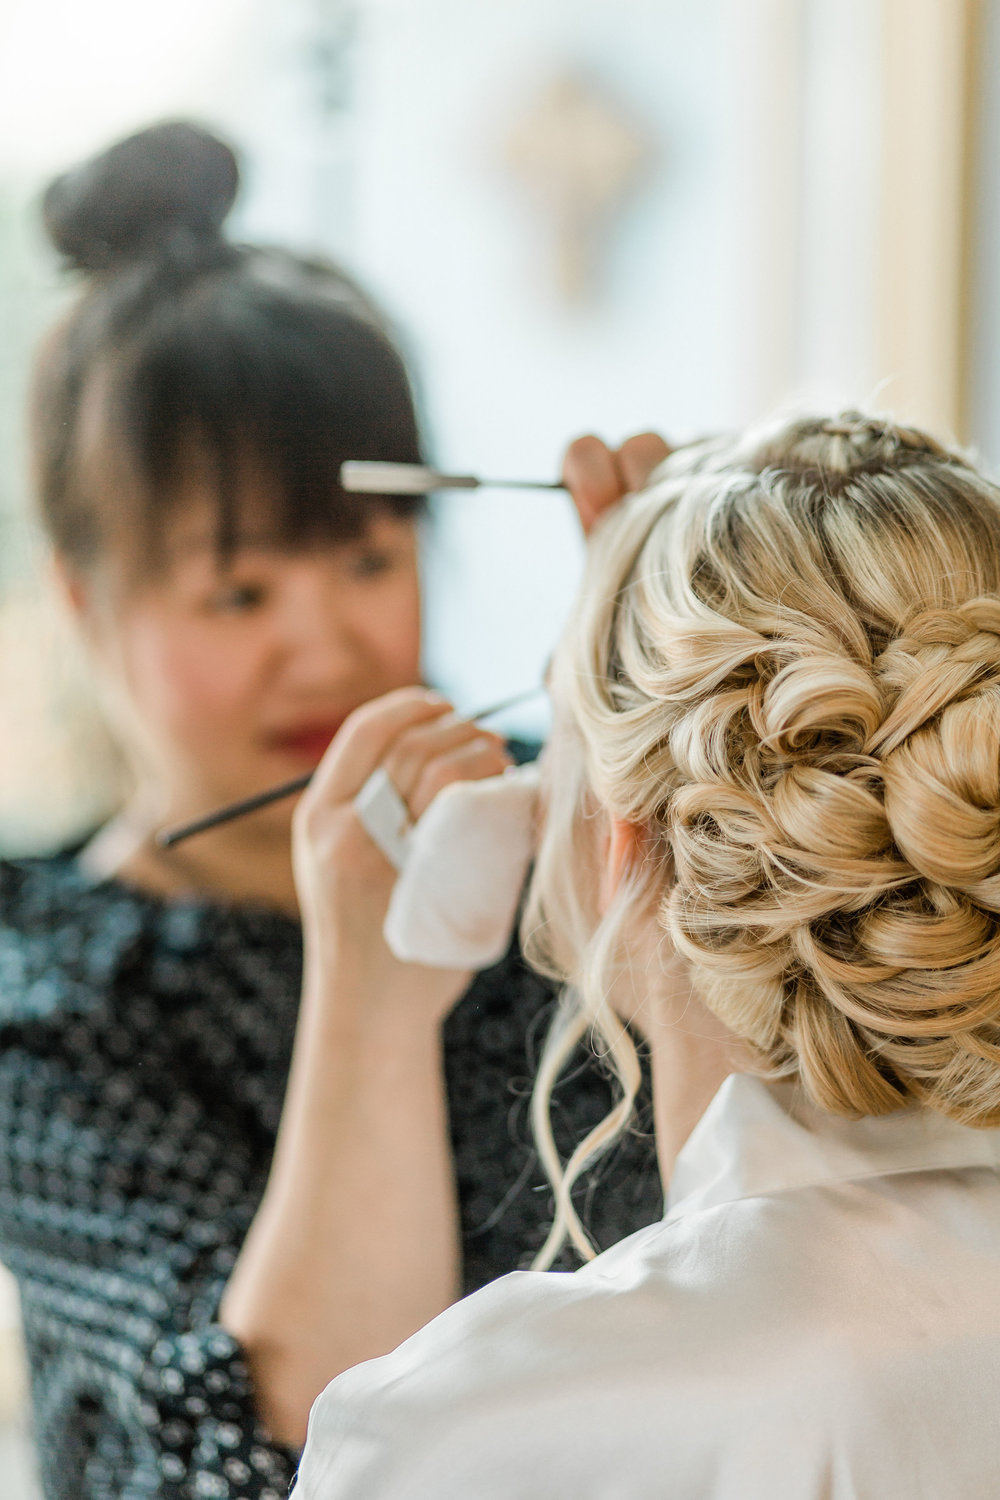 #3 LETS PLAY!!! SCHEDULE YOUR BRIDAL MAKEUP TRIAL - A trial is scheduled at least 4-8 weeks prior to your event date. On the day of your trial we will explore all your wedding day inspirations so that we can build & create your wedding day makeup look to your liking.